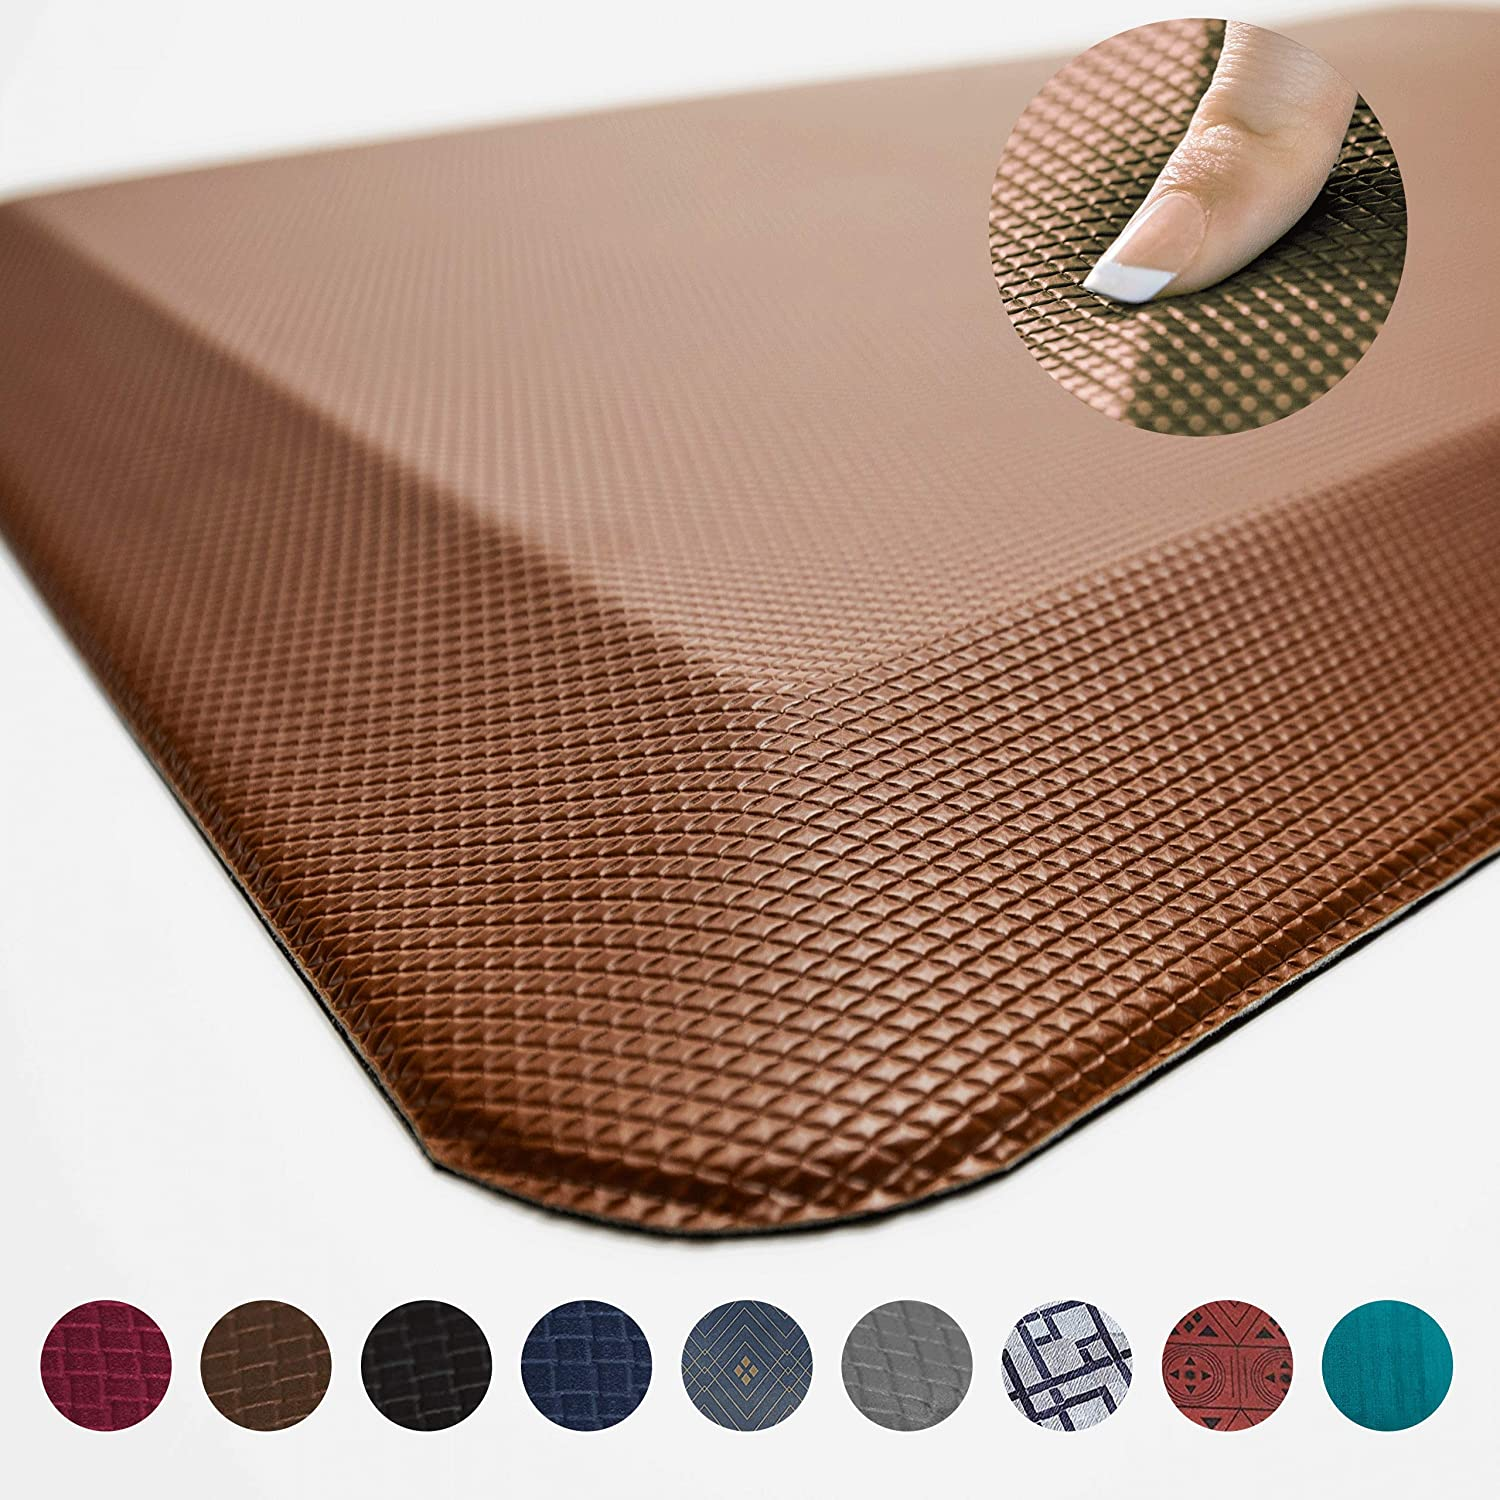 Anti Fatigue Comfort Floor Mat by Sky Mats -Commercial Grade Quality Perfect for Standup Desks, Kitchens, and Garages - Relieves Foot, Knee, and Back Pain (24x70x3/4-Inch, Chocolate Brown)